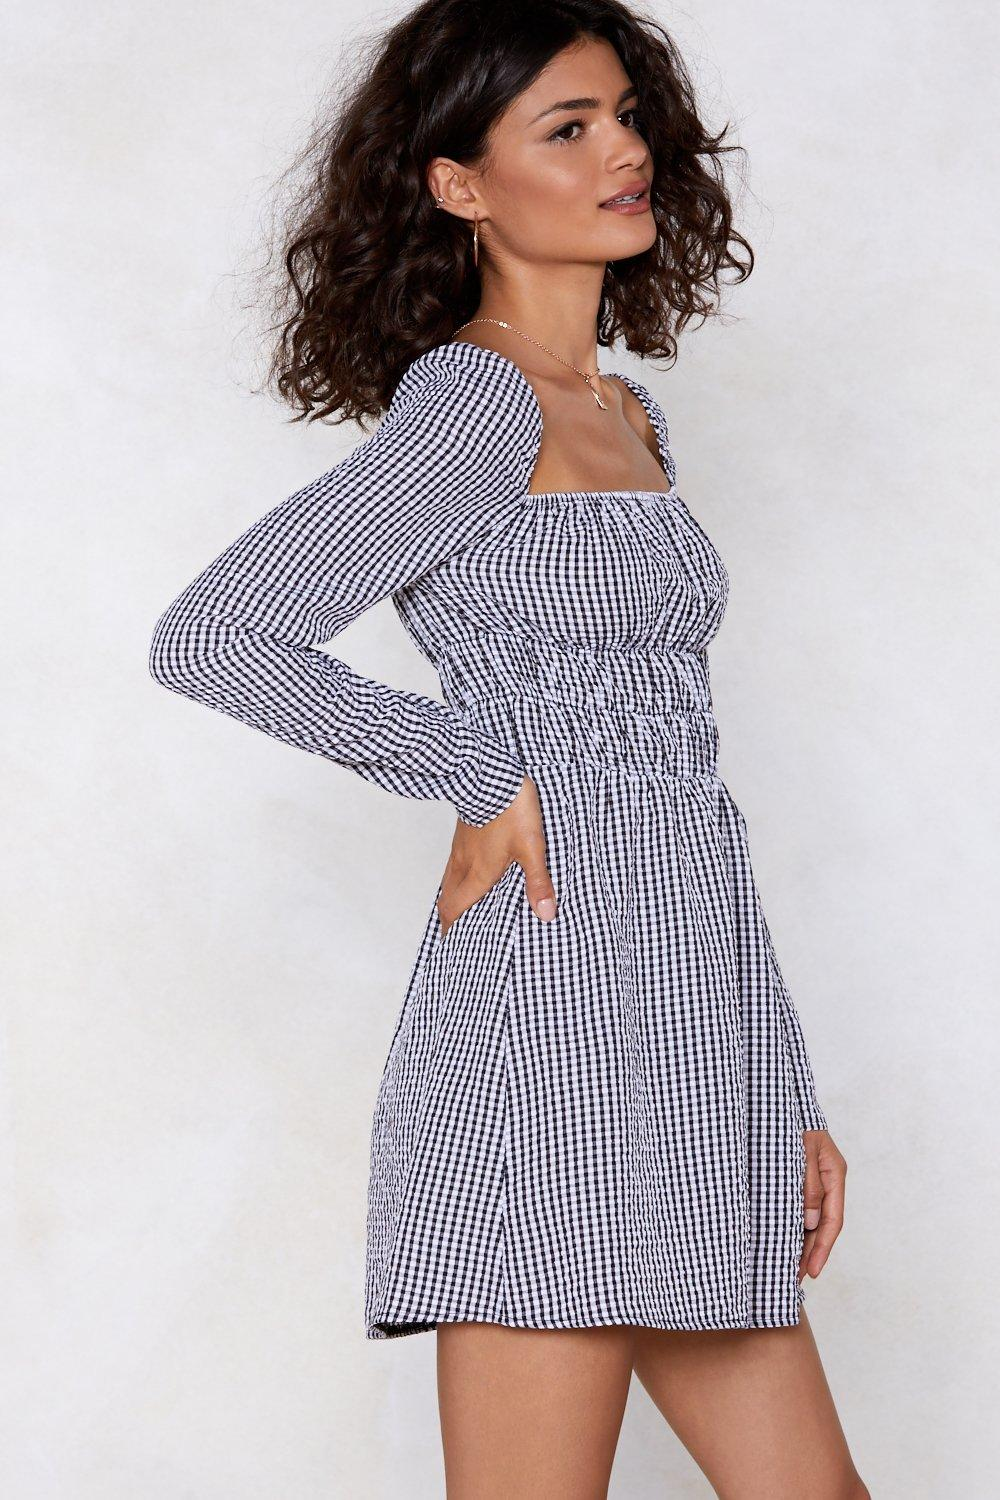 4c503c78b7694 Scarborough Square Gingham Dress | Shop Clothes at Nasty Gal!